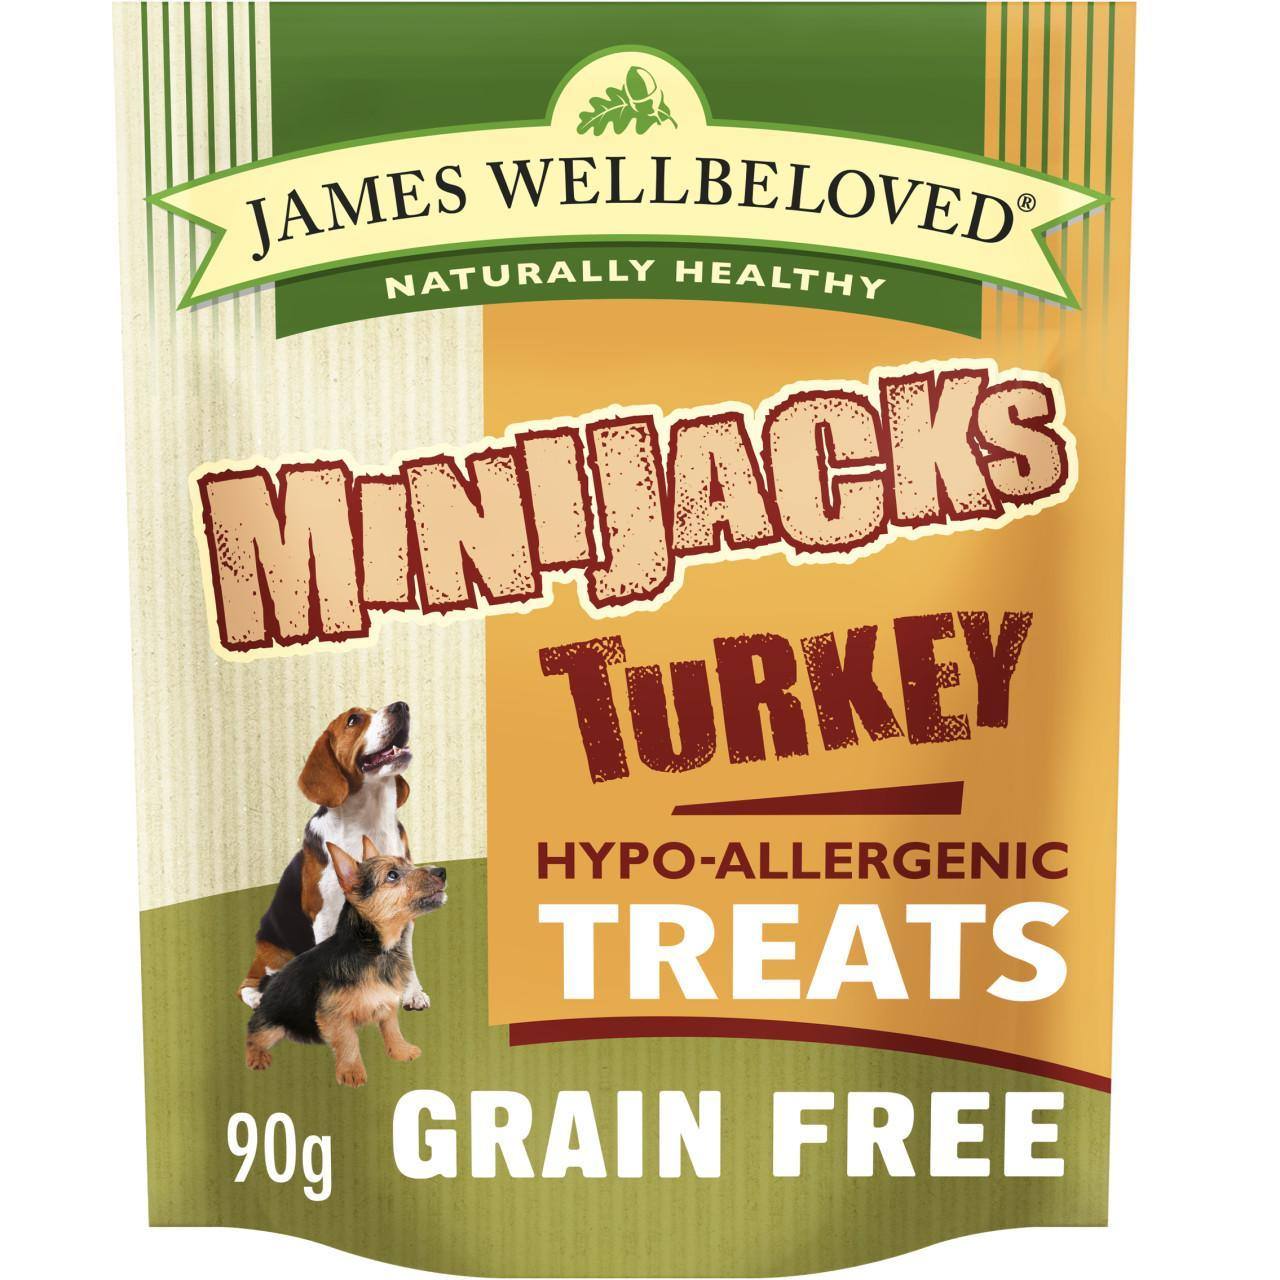 An image of James Wellbeloved Grain Free Turkey Minijacks